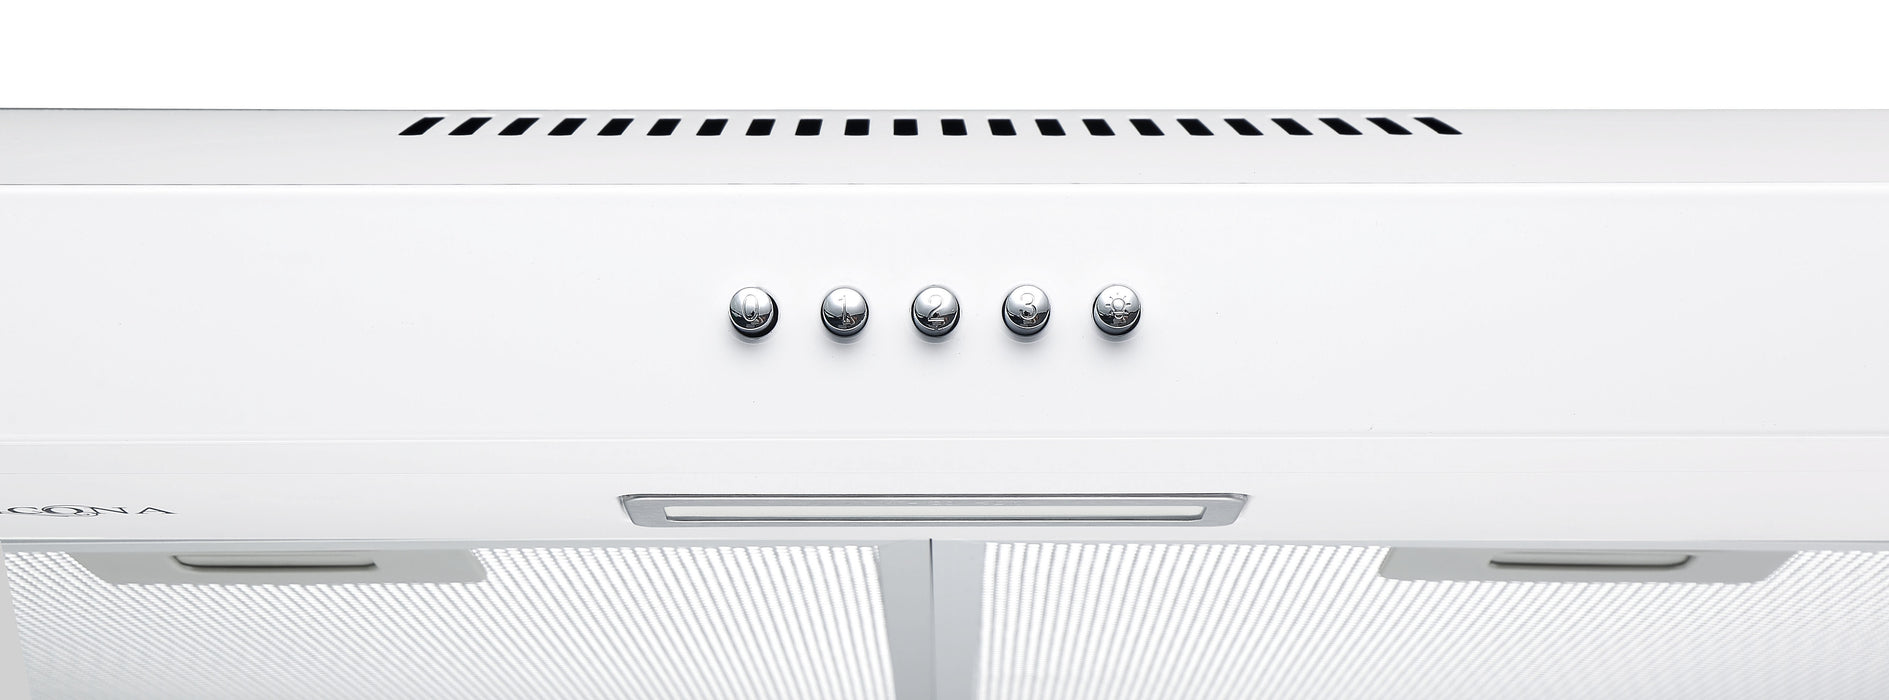 24 in. Convertible Under Cabinet Range Hood in White Stainless Steel